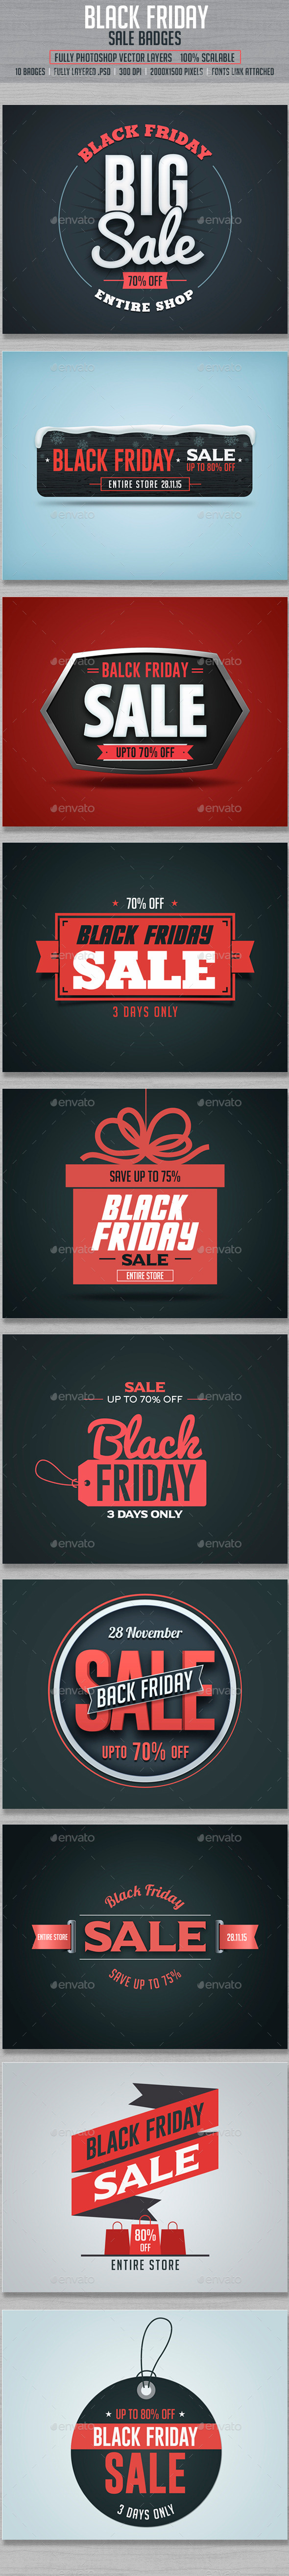 Black Friday Sale Badges - Badges & Stickers Web Elements